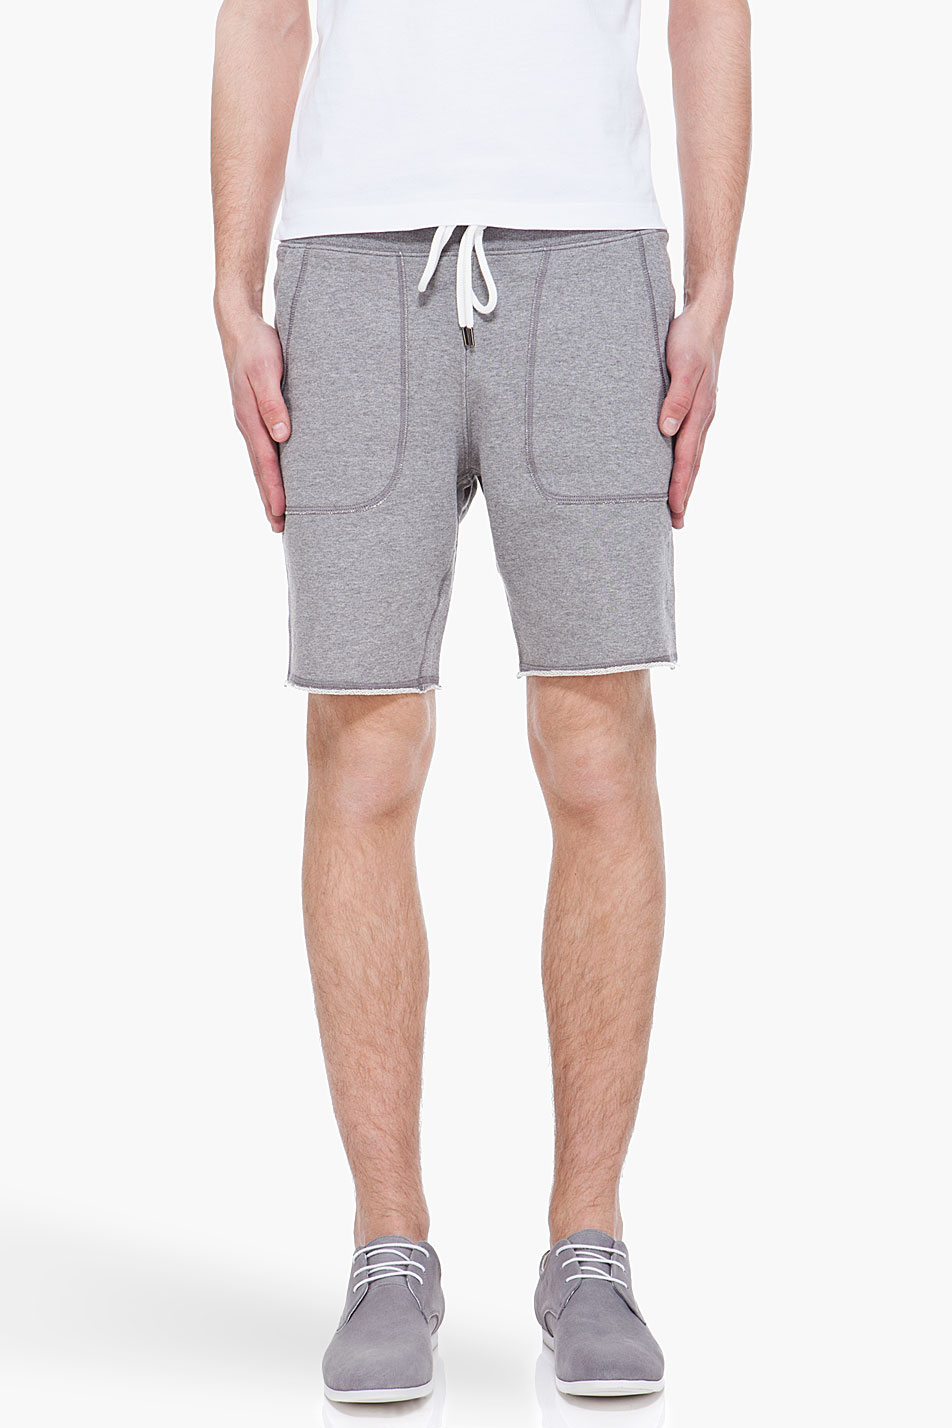 93f00fdd6912 Lyst - Moncler Grey Cutoff Sweat Shorts in Gray for Men